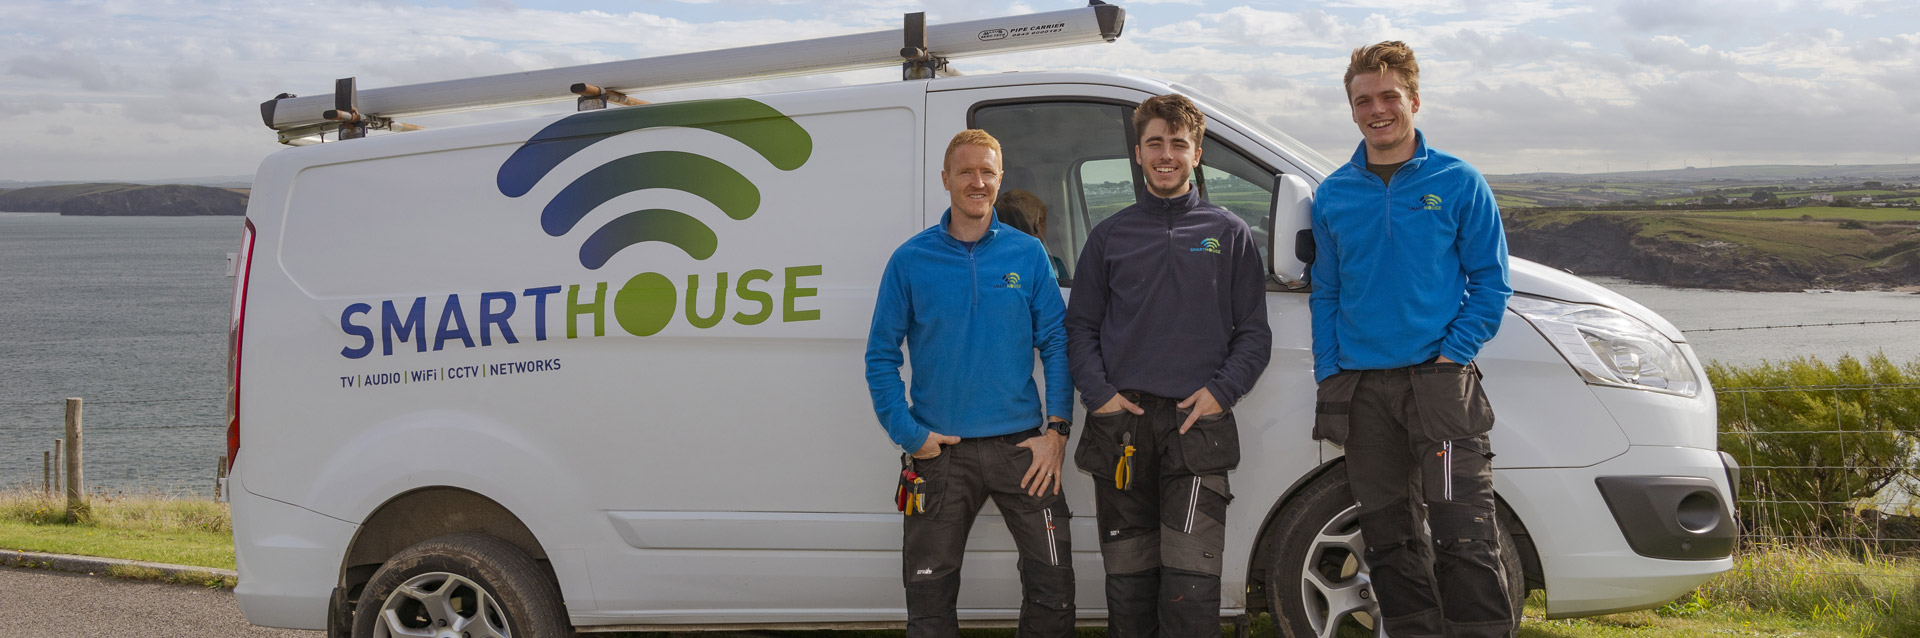 Smarthouse Staff stand beside Work Van